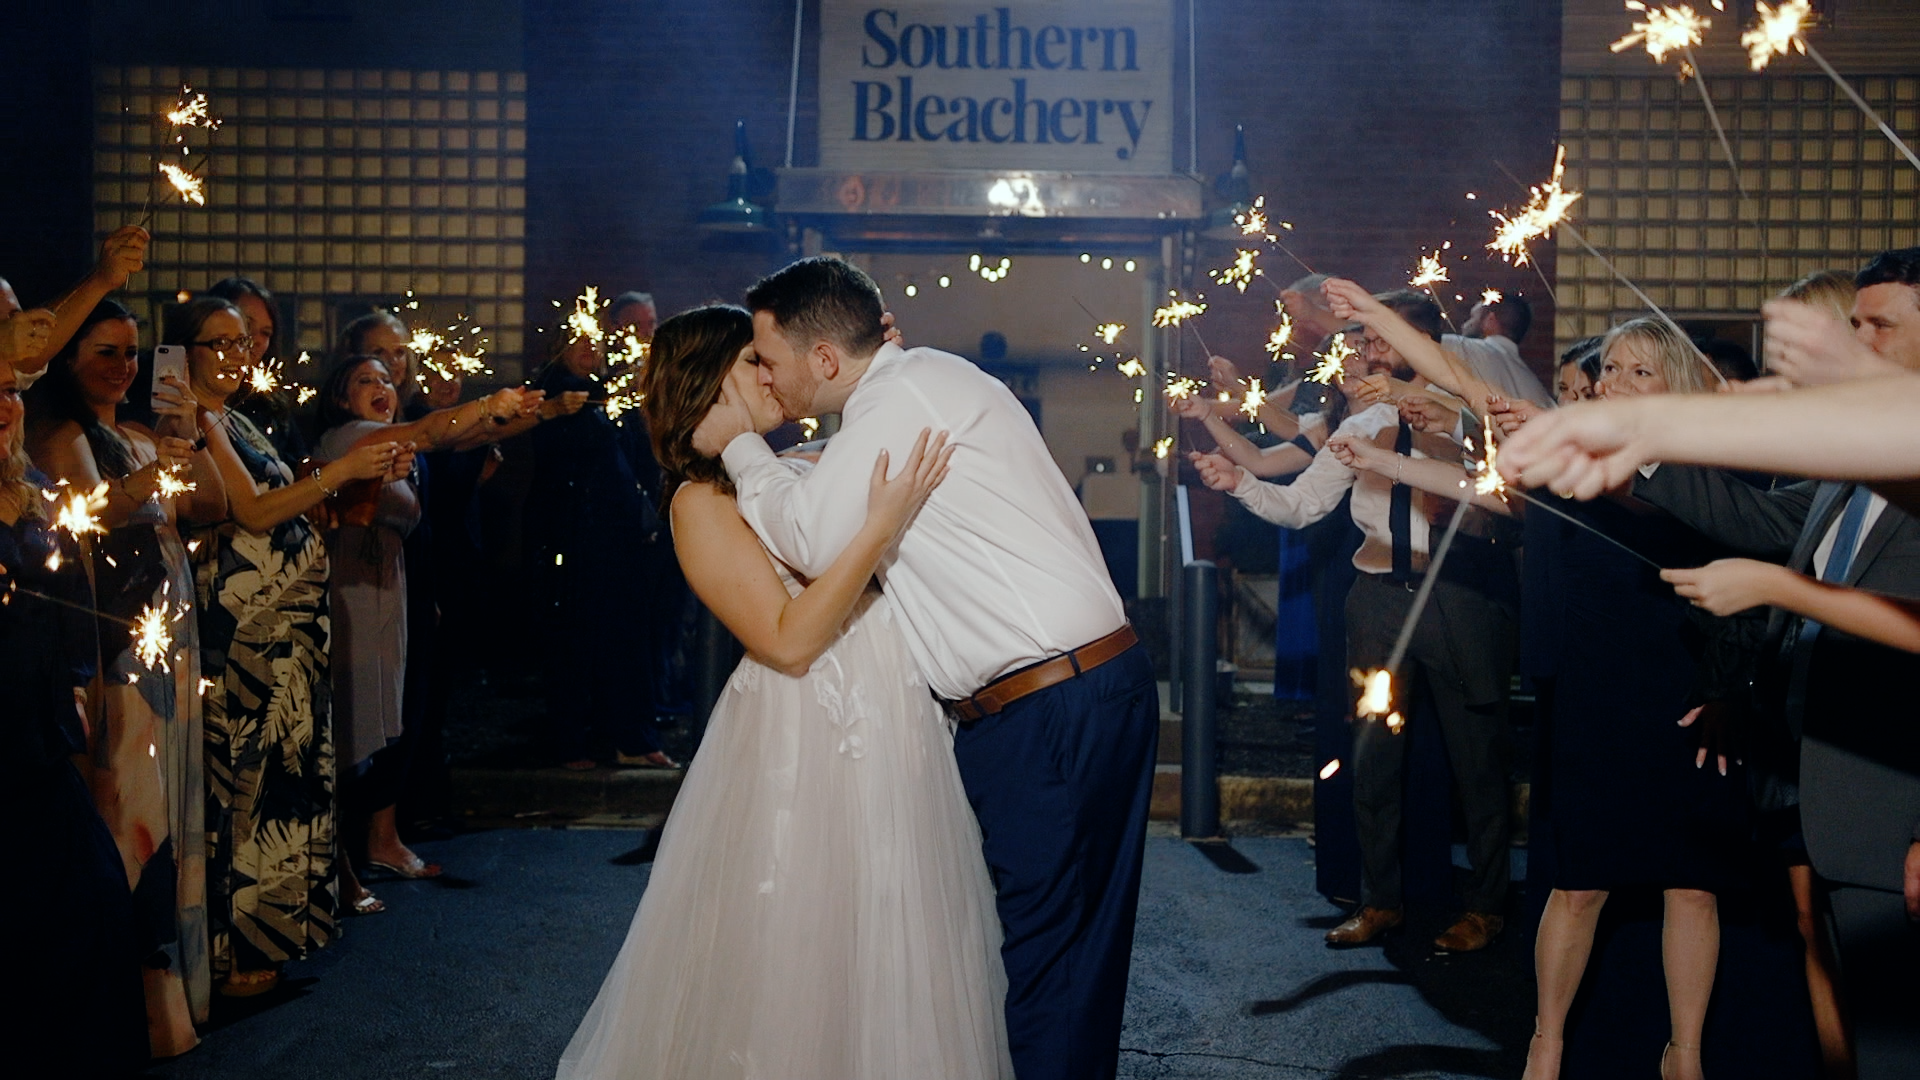 Amanda + Jonathan | Taylors, South Carolina | The Southern Bleachery